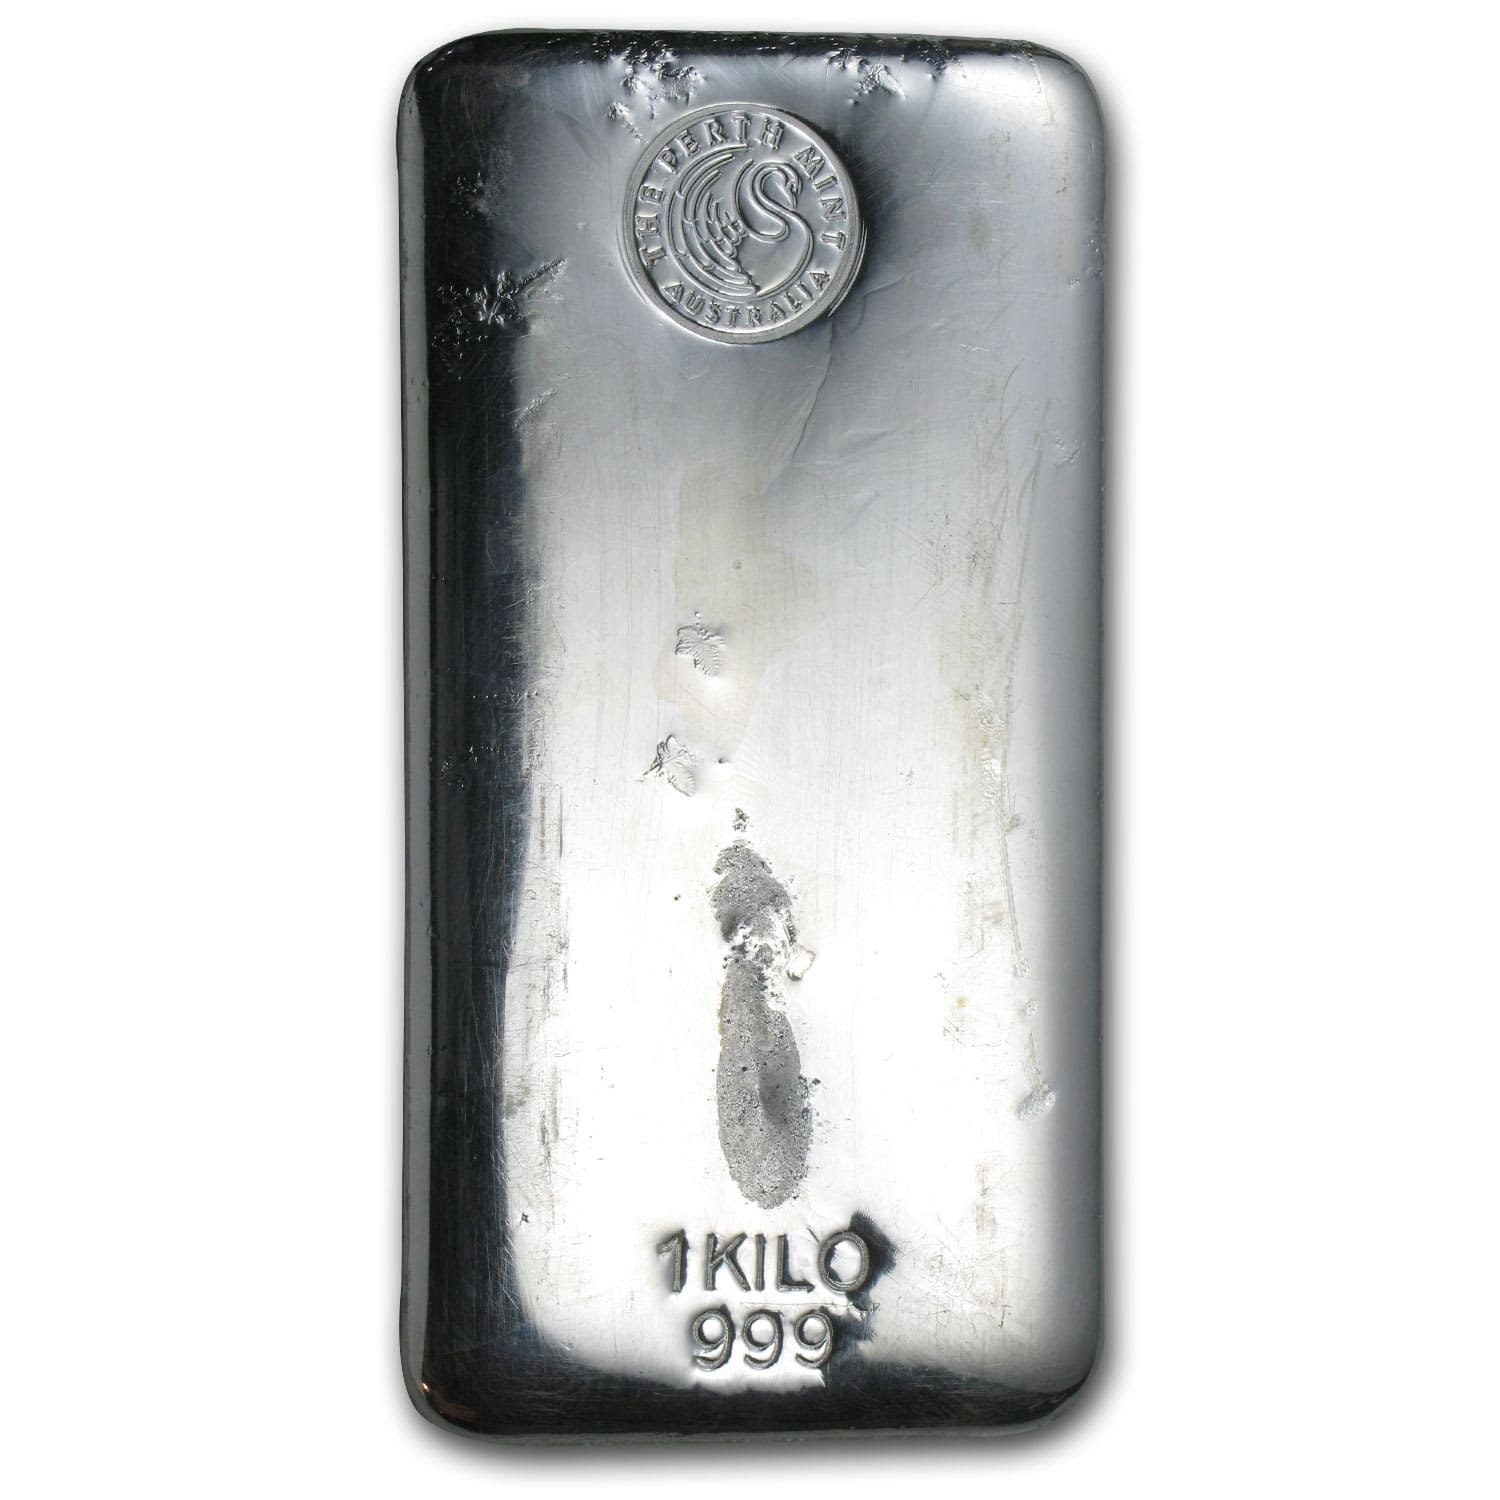 1 Kilo Silver Bar Perth Mint Kilo 32 15 Oz Silver